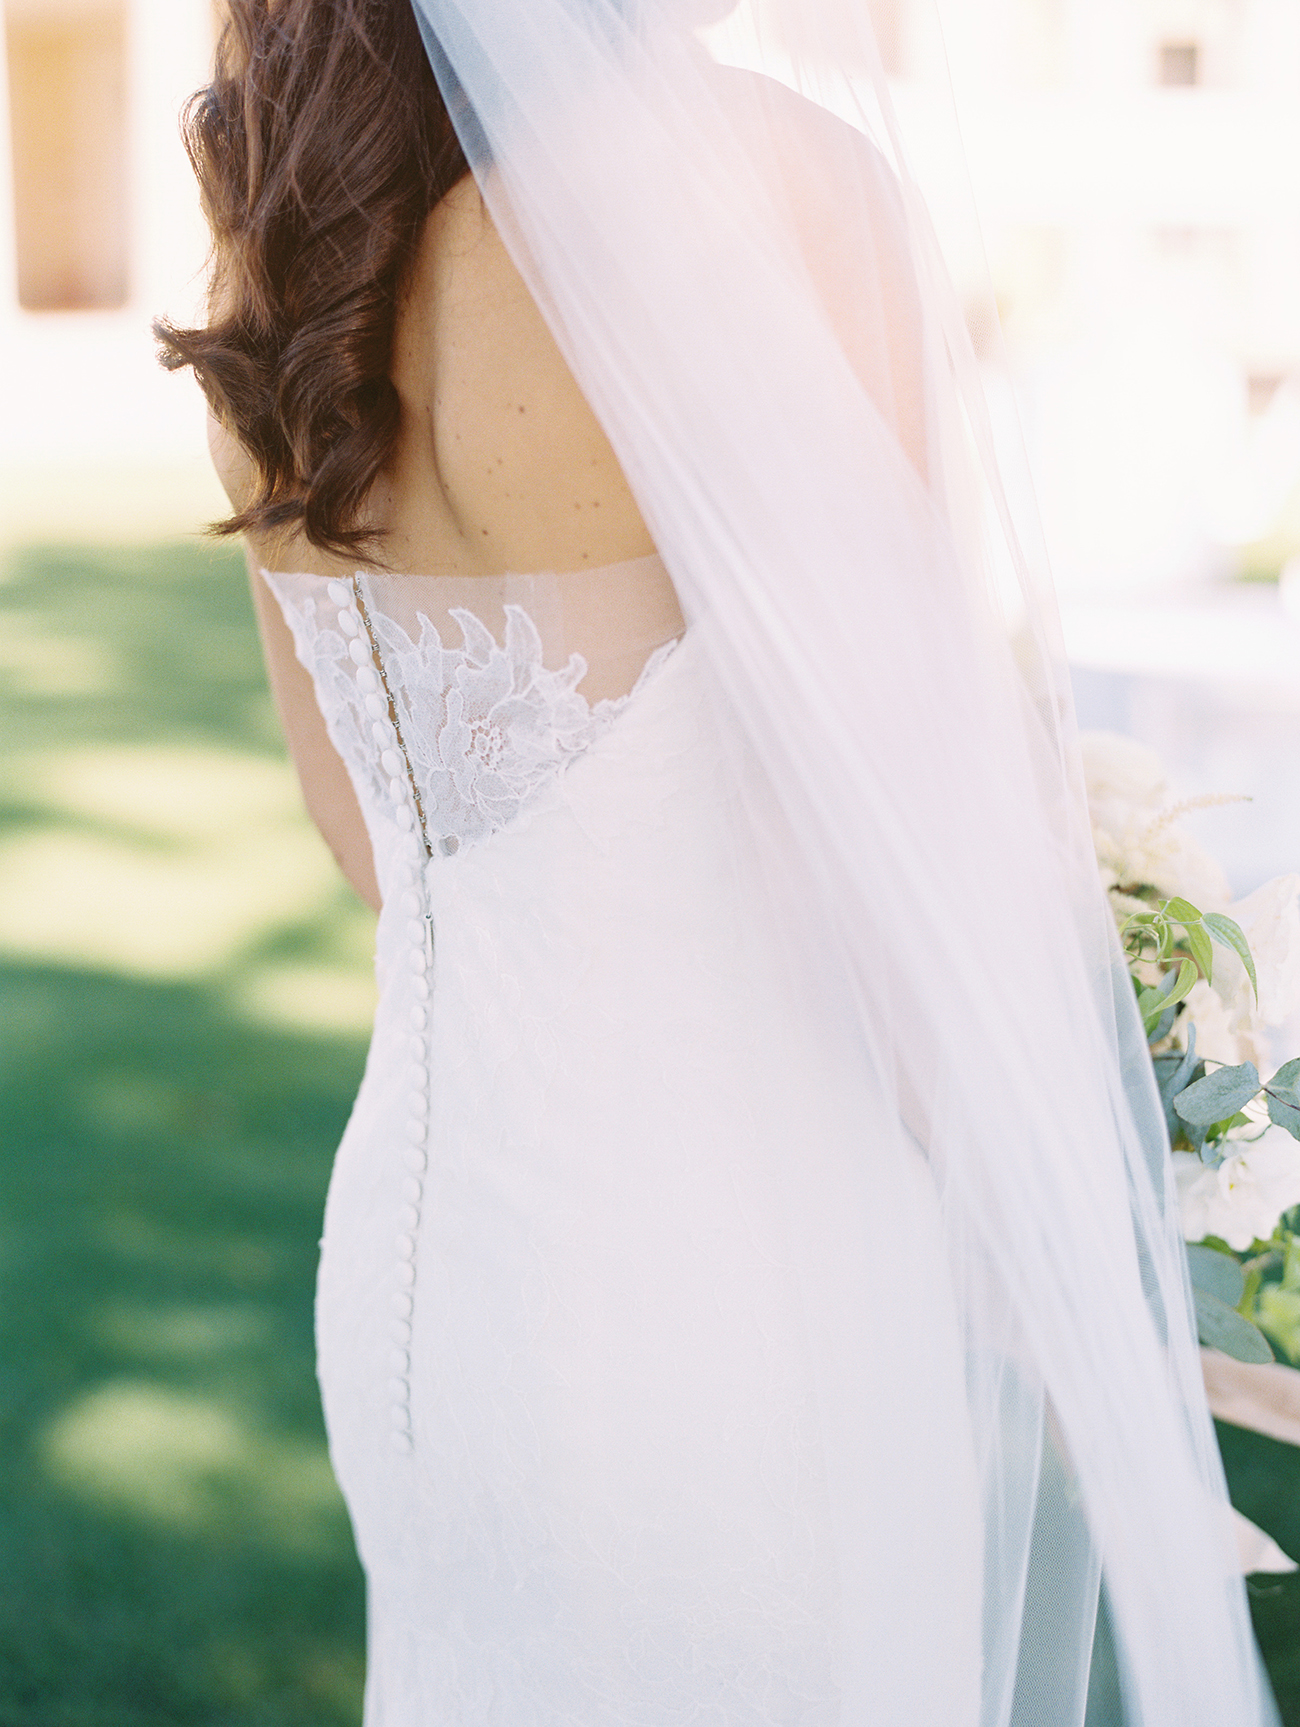 jessica brian wedding dress detail